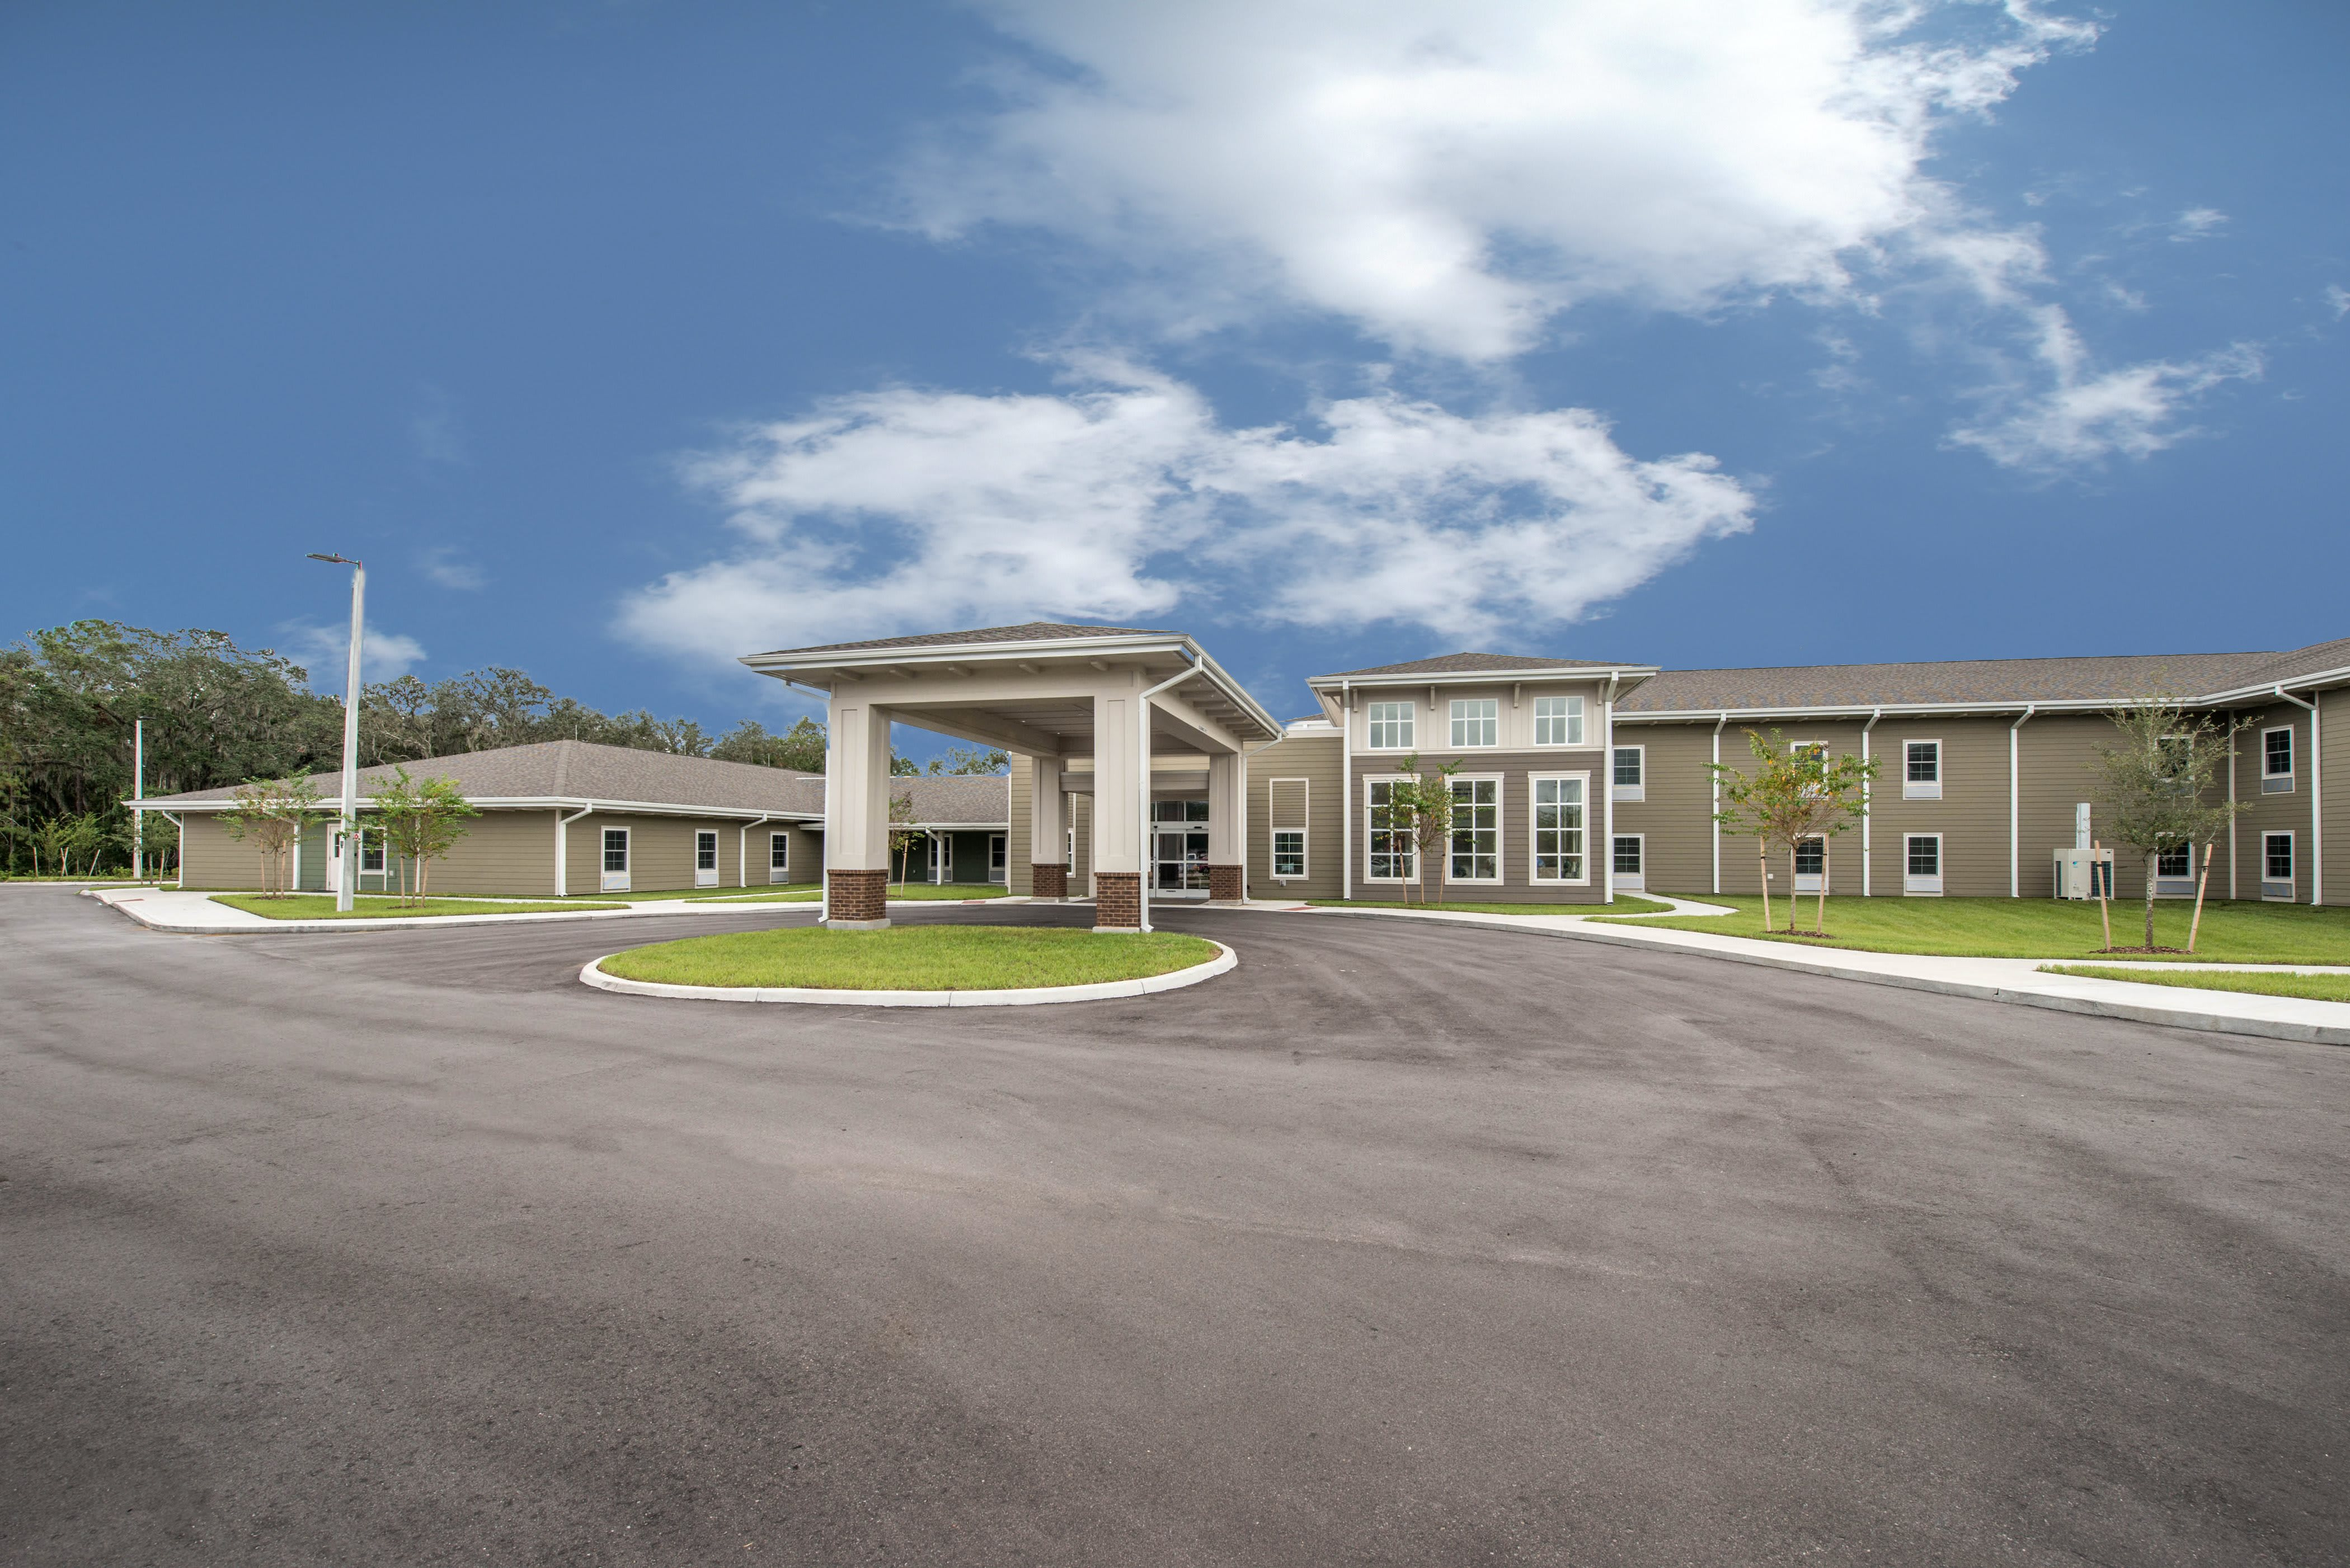 Photo 1 of Twin Creeks Assisted Living & Memory Care